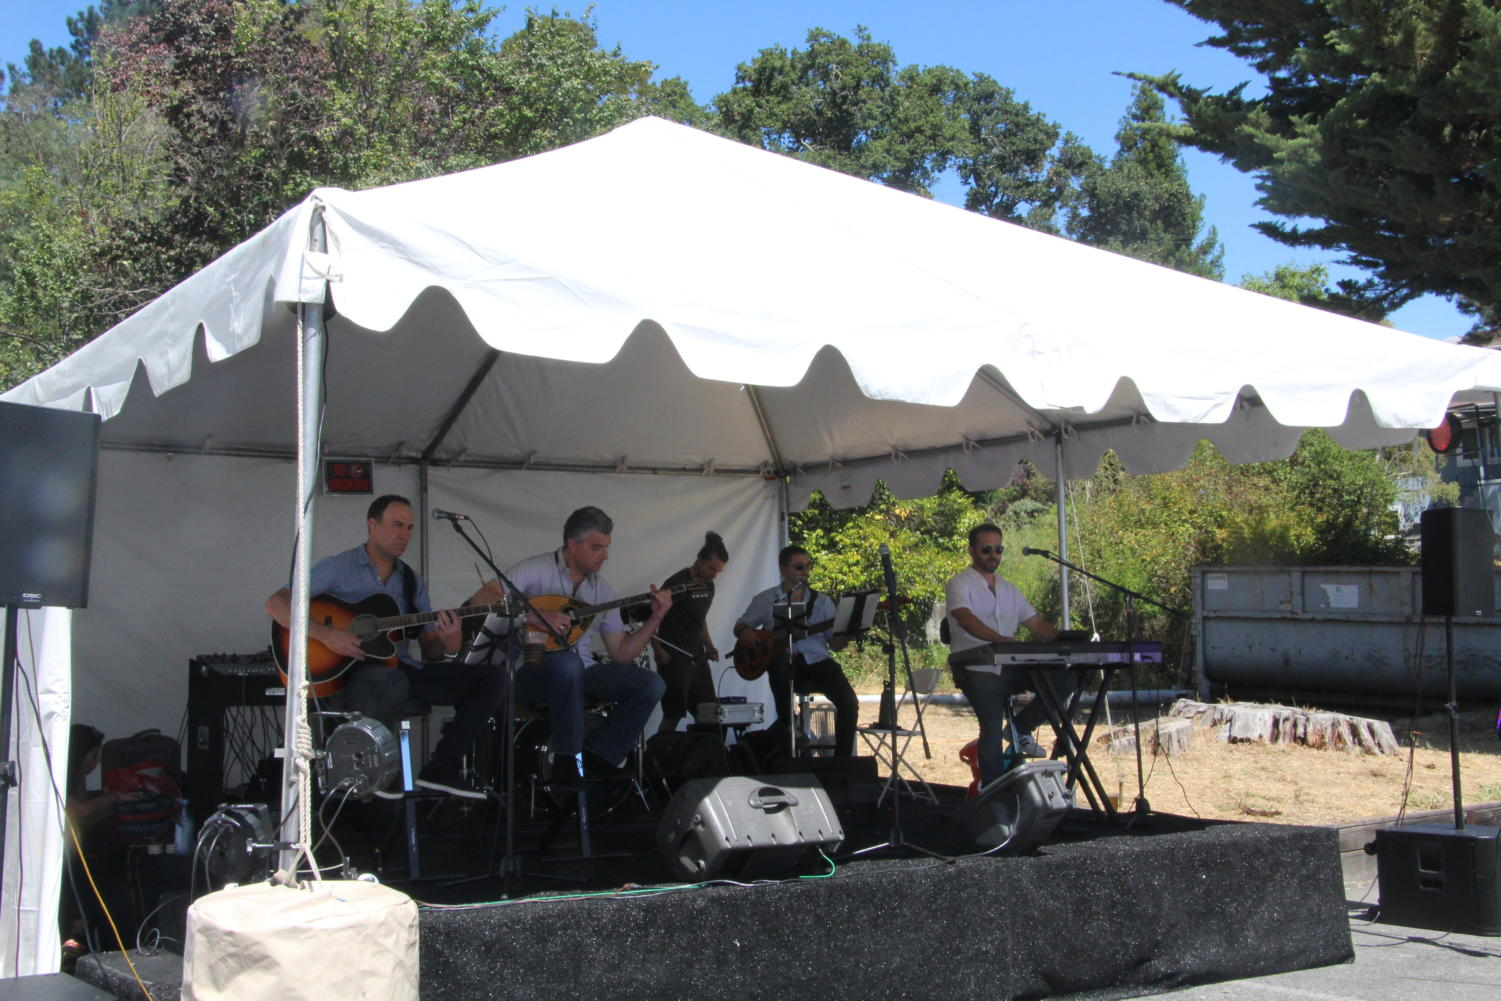 The+band+Mythos+performs+traditional+Greek+music+during+the+festival.